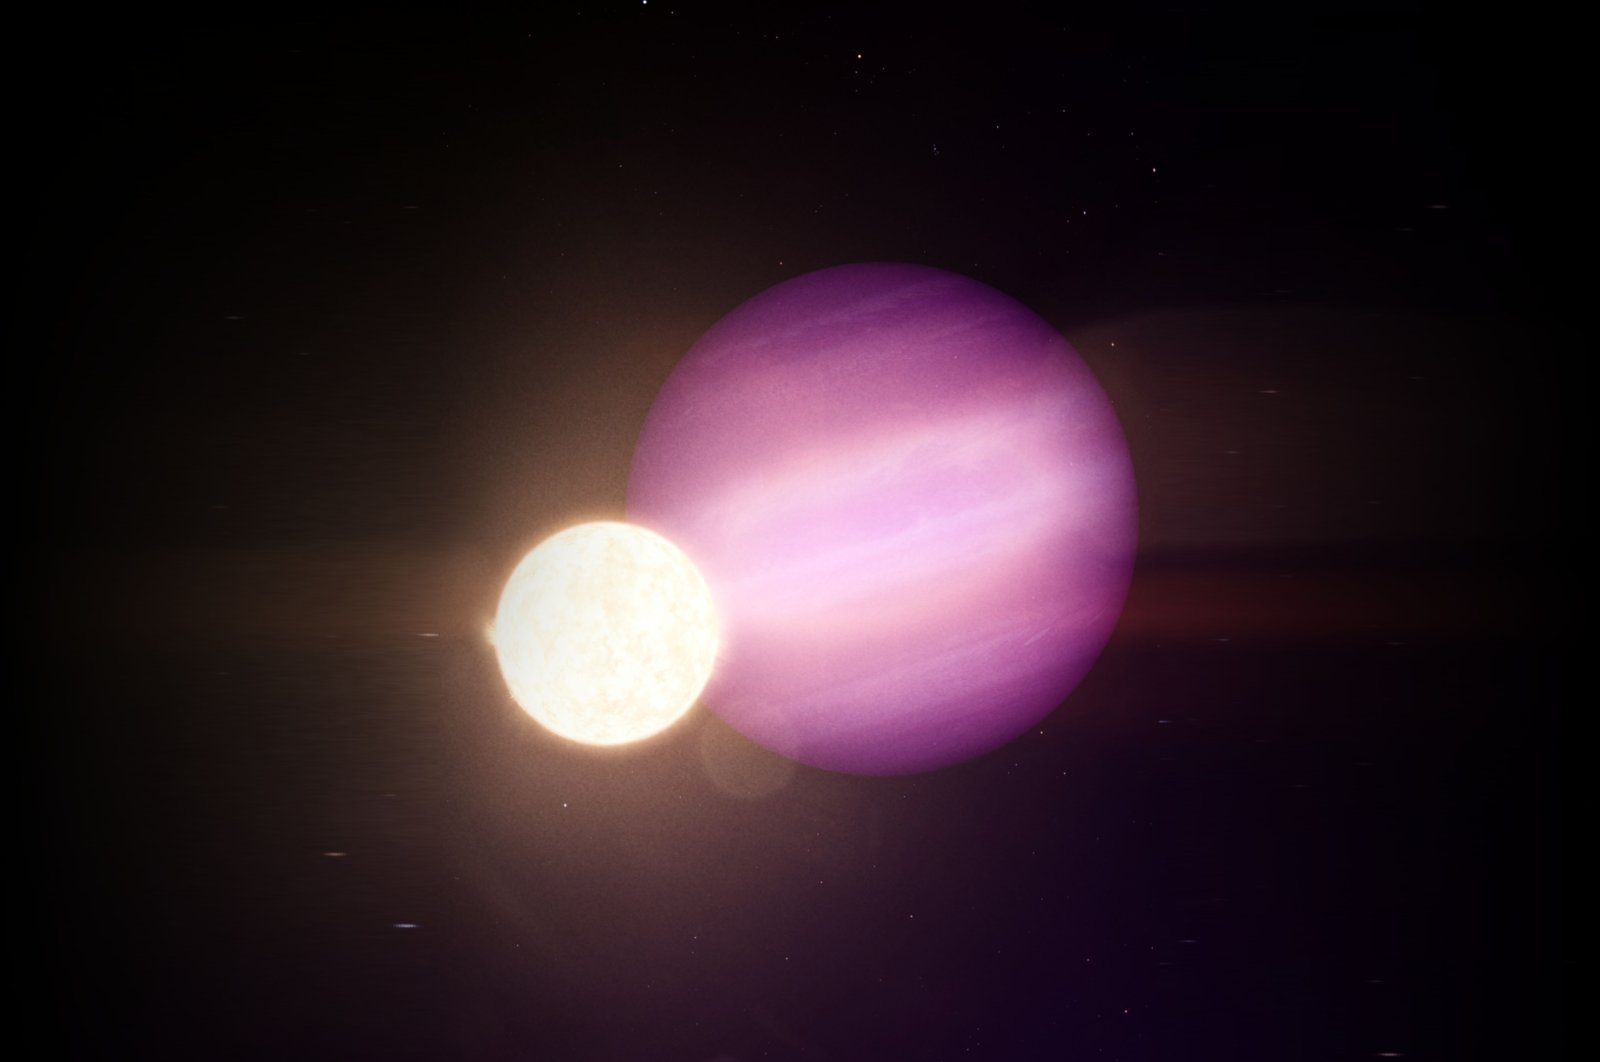 A handout photo made available by NASA shows an artist's impression of WD 1856 b, a potential Jupiter-size planet, orbiting its much smaller host star, a dim white dwarf, issued Sept. 17, 2020. (NASA Goddard Space Flight Center via EPA)